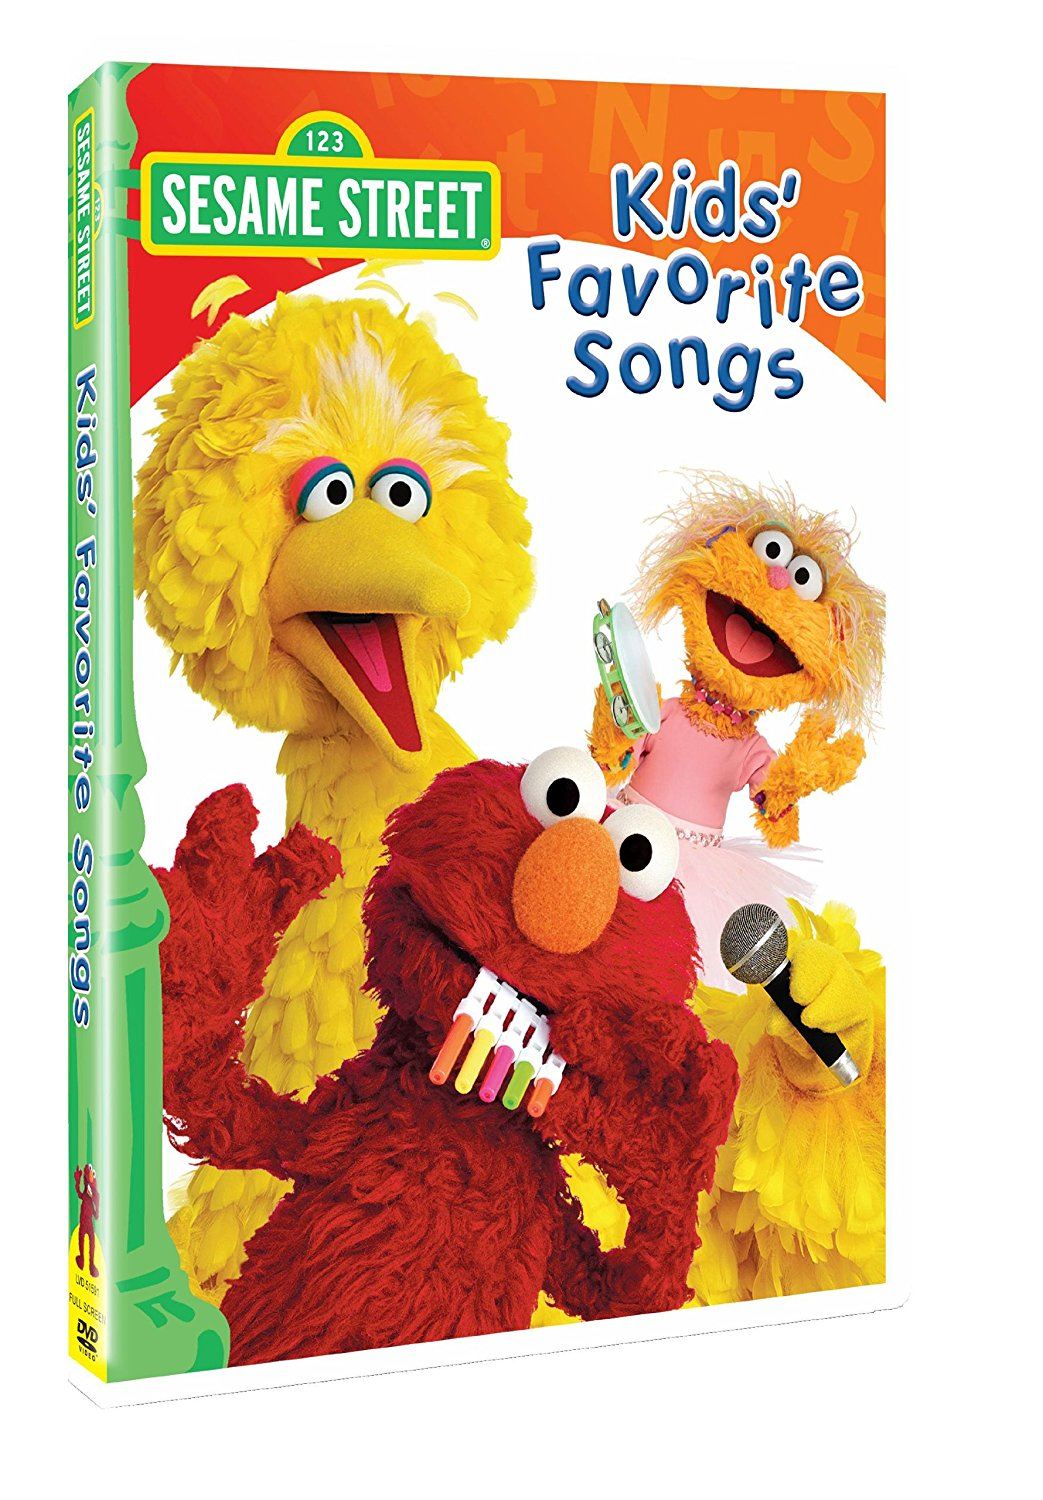 Sesame Street - Kids' Favorite Songs by Sesame Street